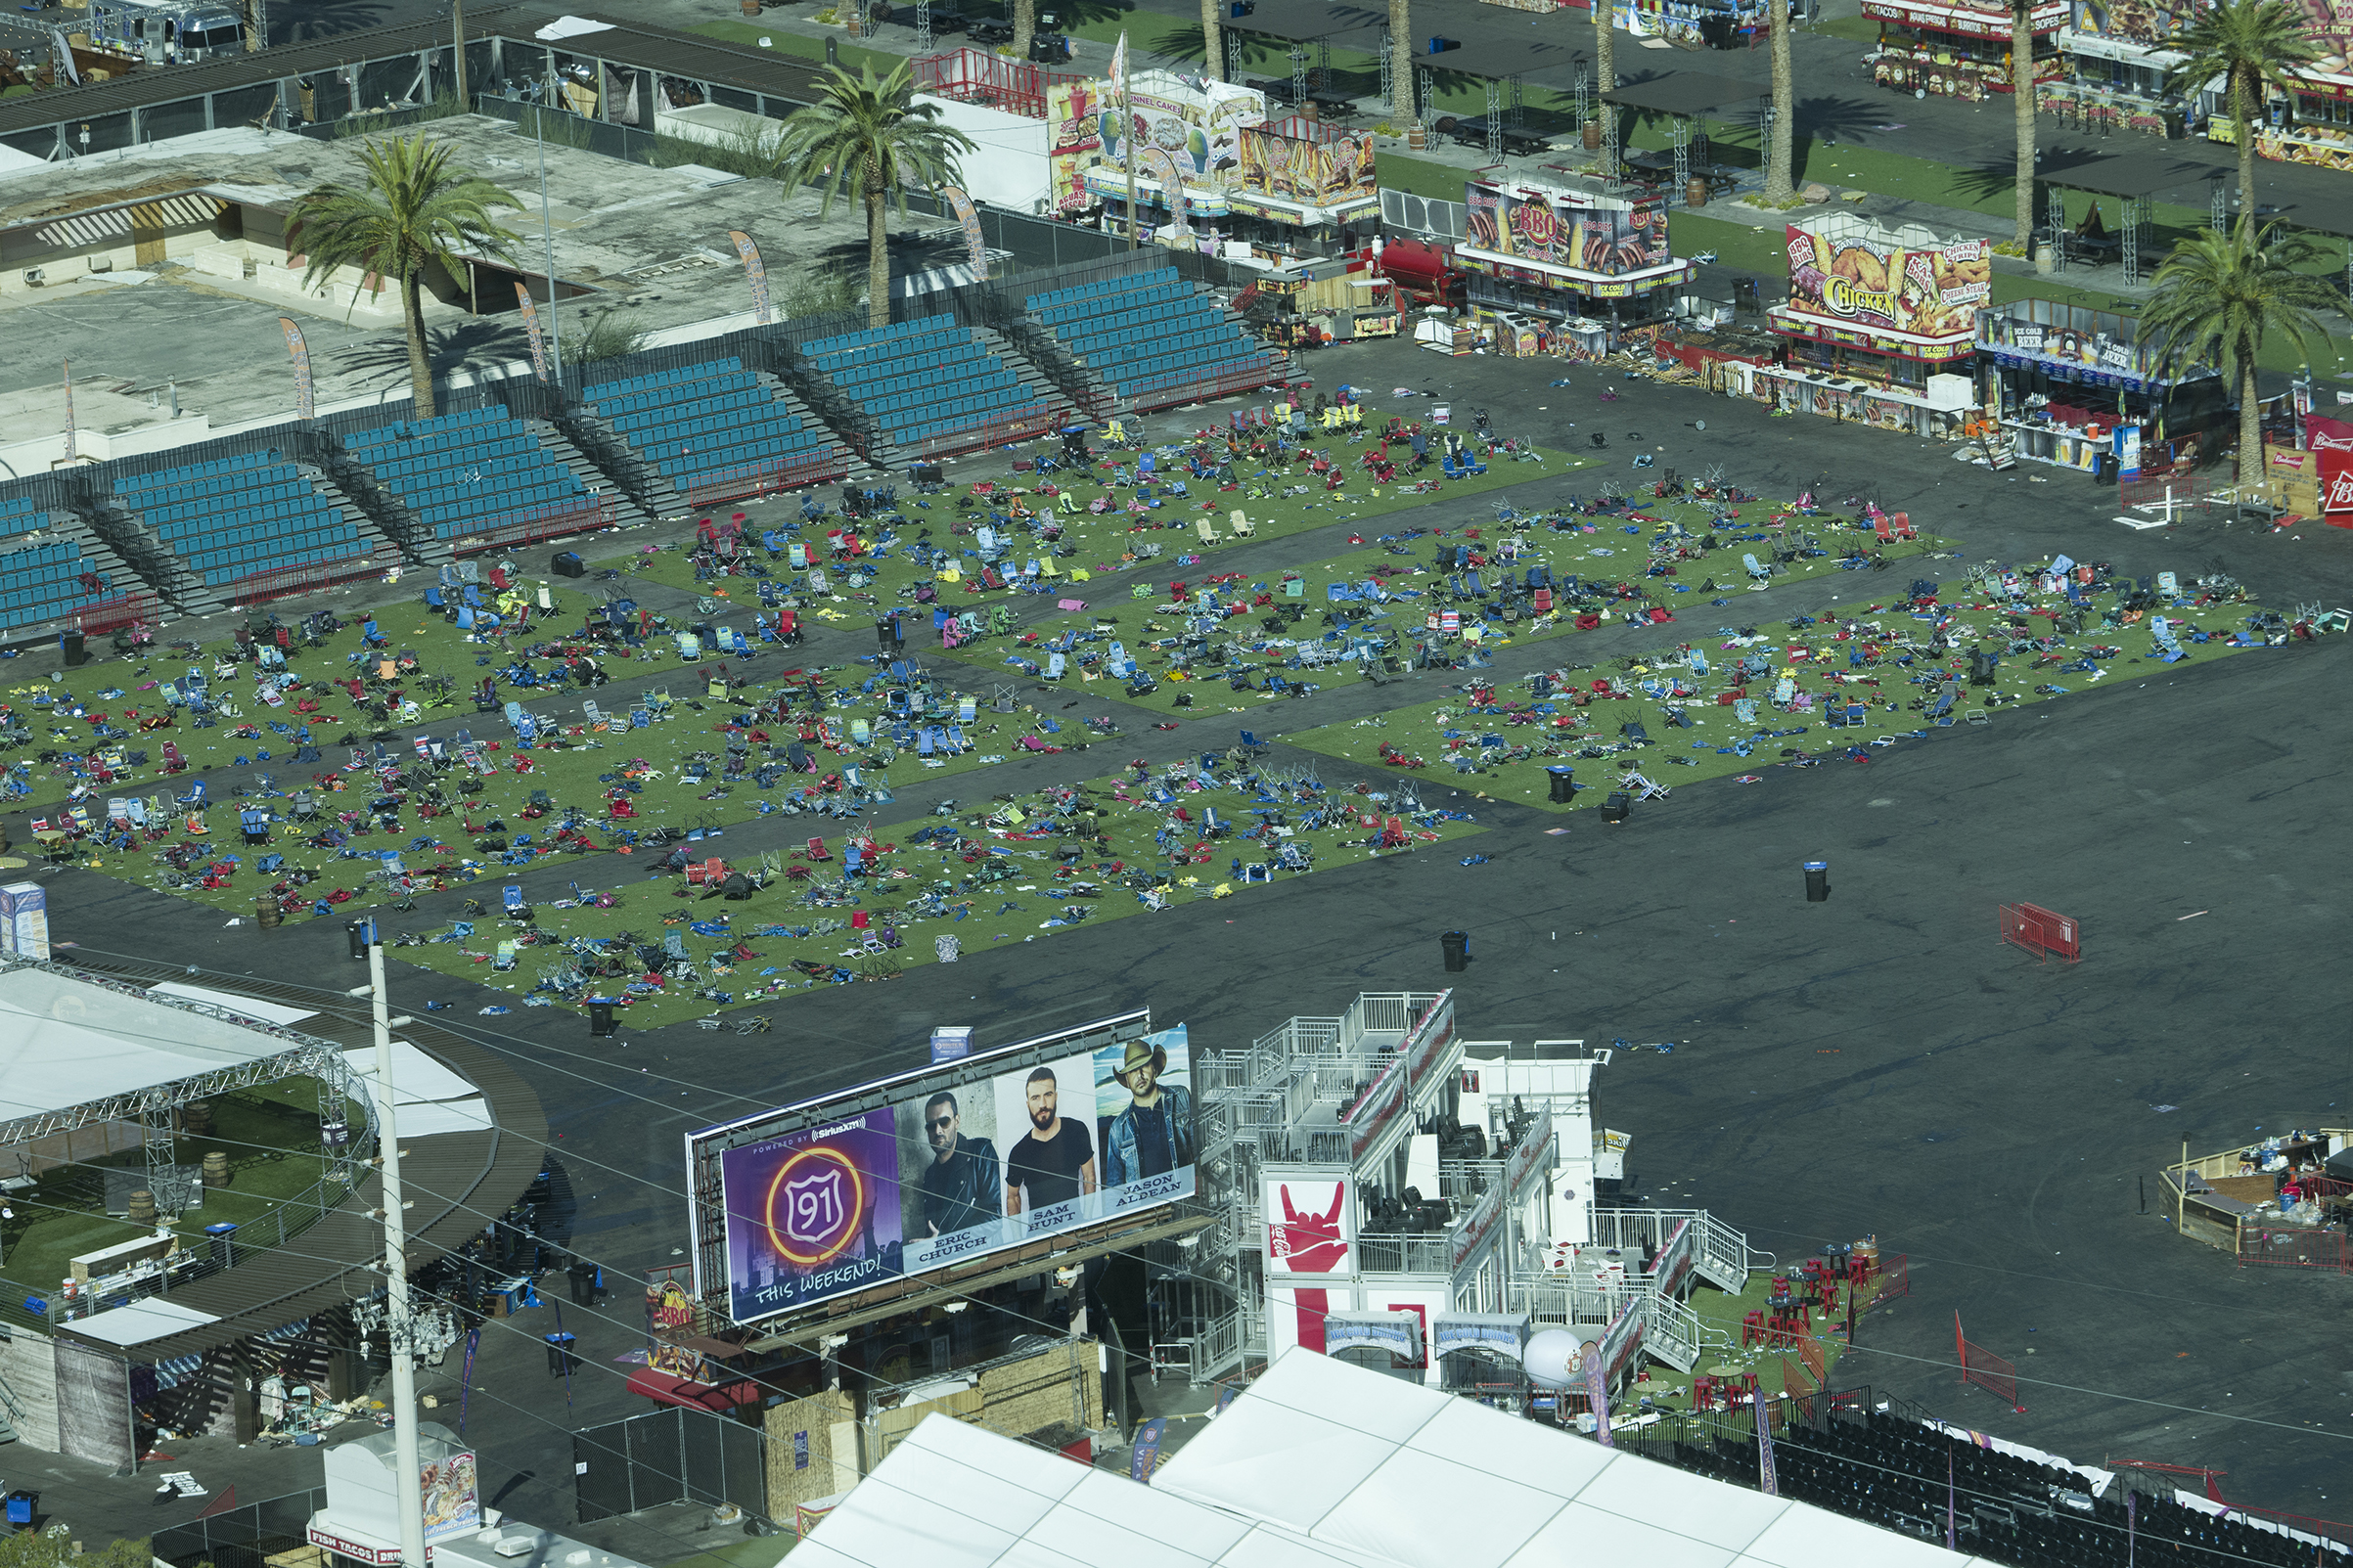 View of the festival grounds showing scattered belongings and chairs, left behind at the site of the mass shooting, Oct. 3, 2017.